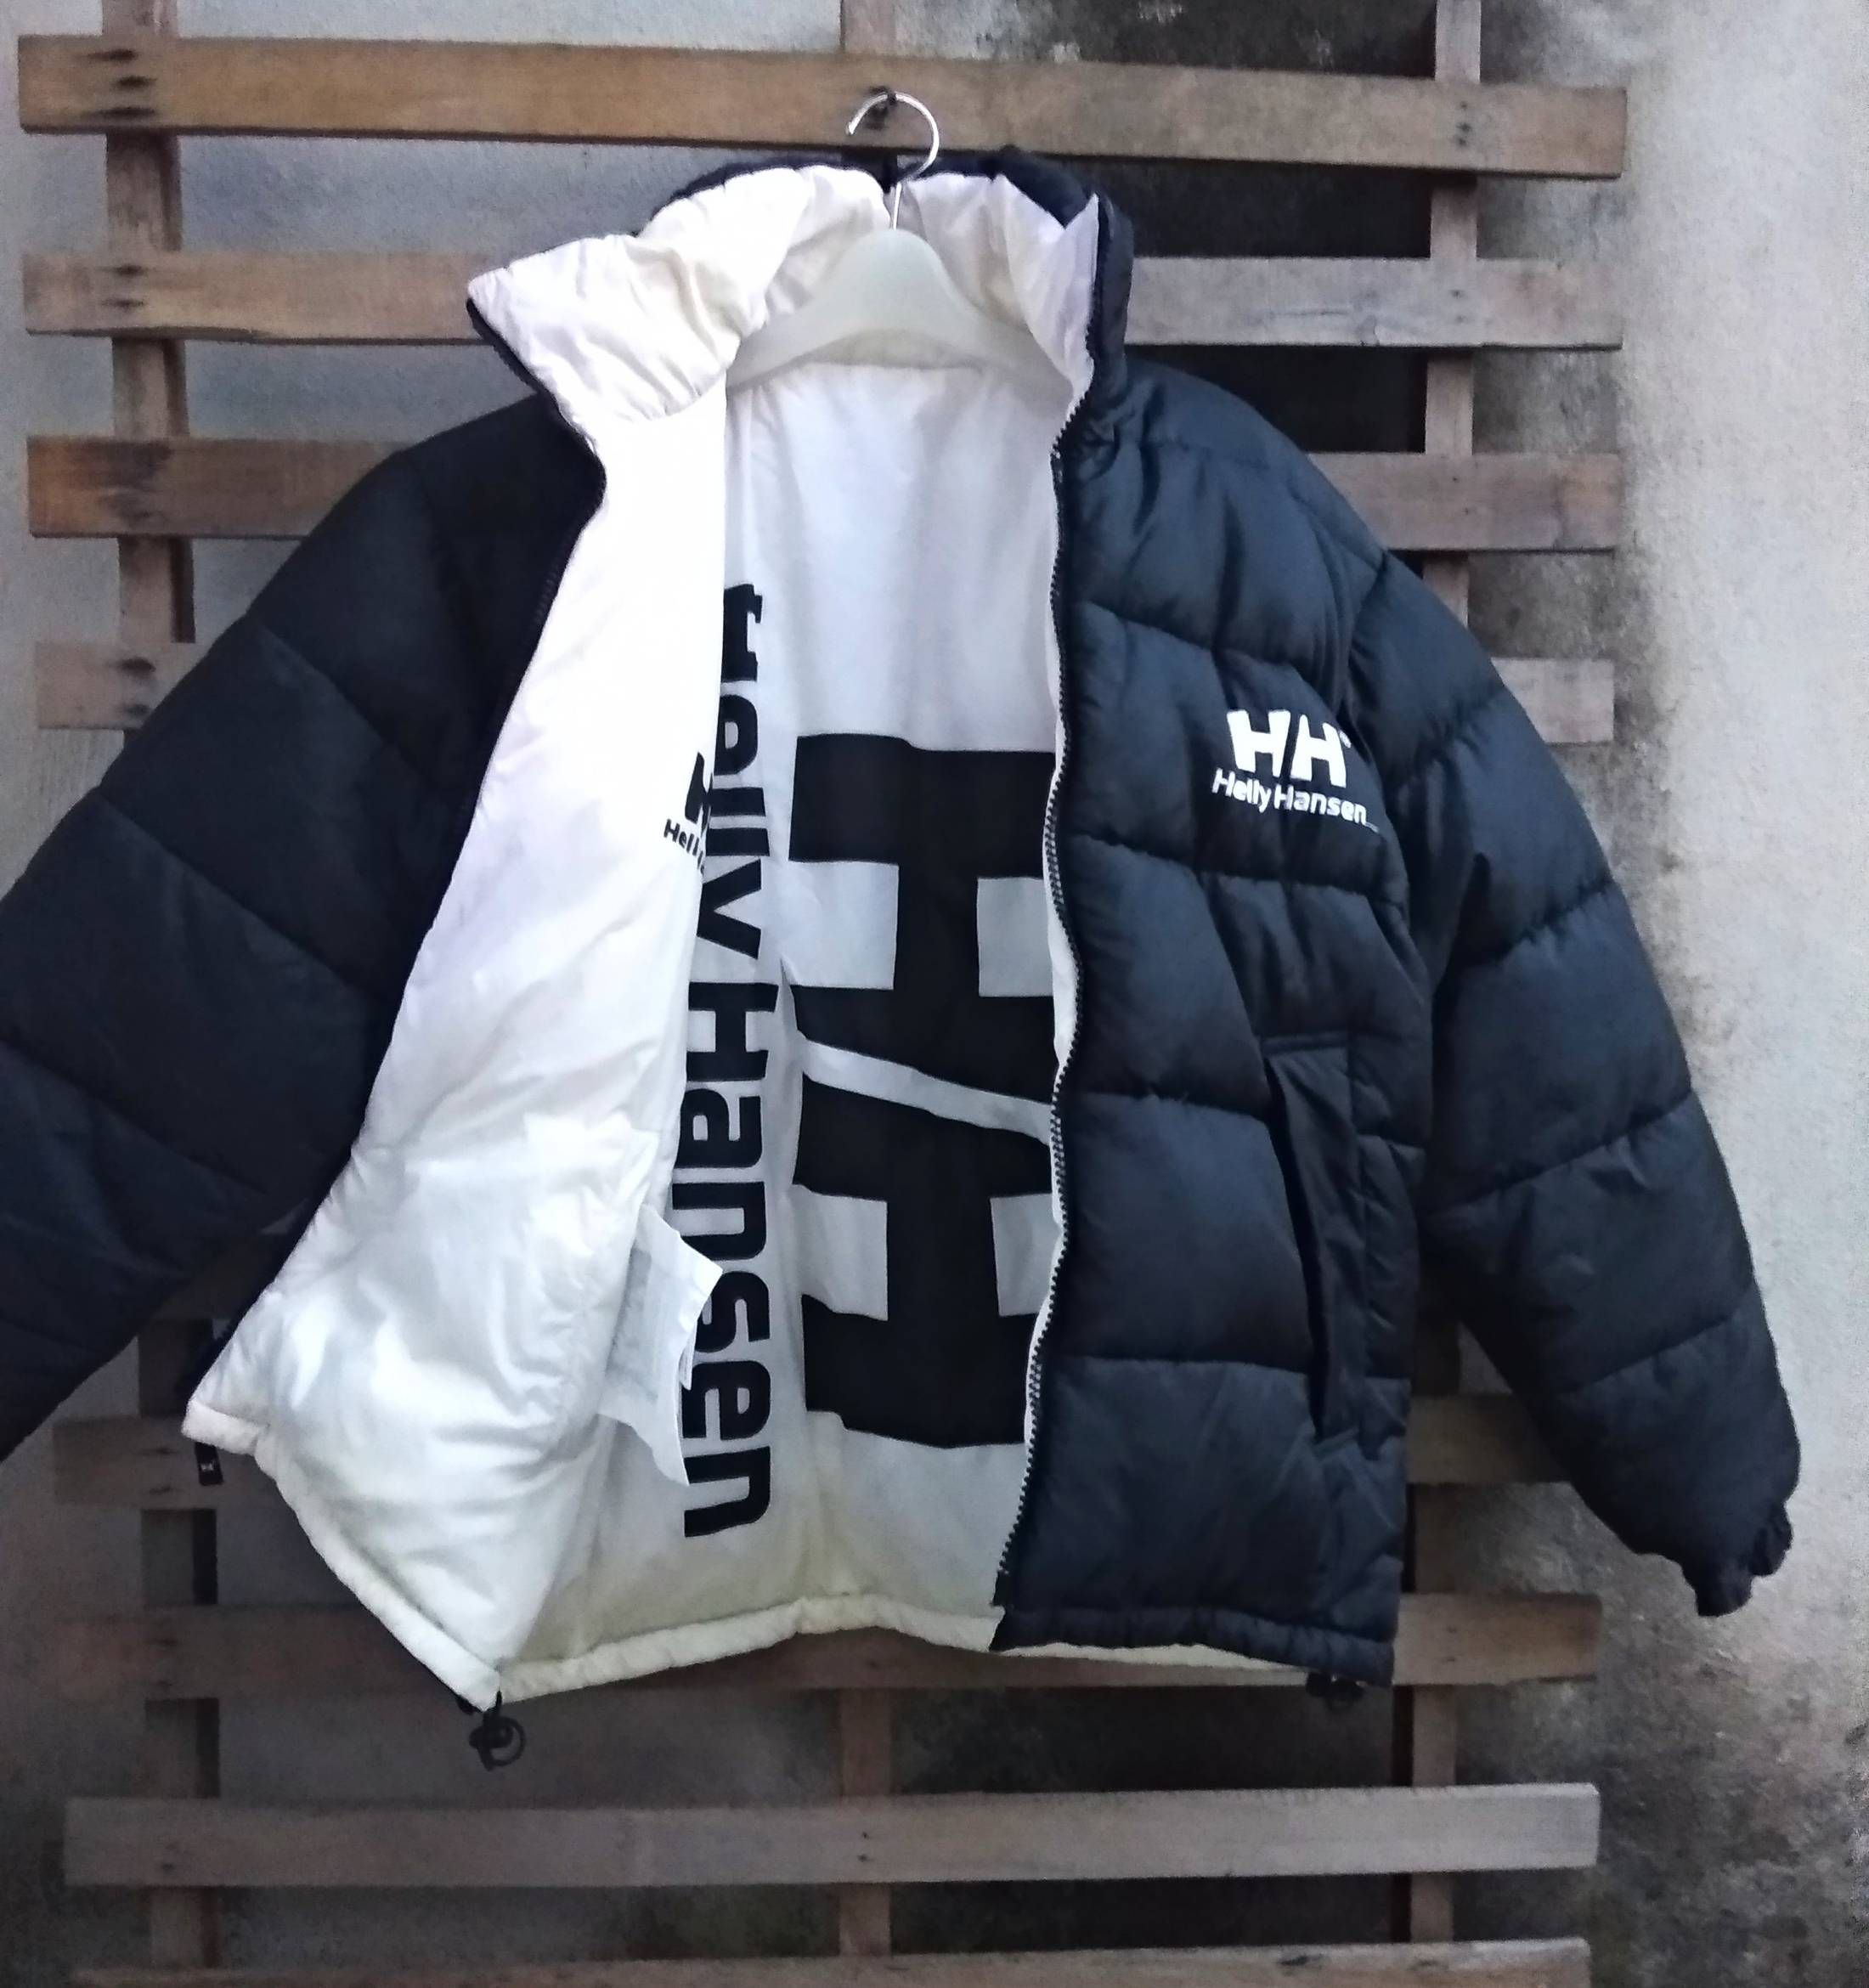 ff67ae83a2f6 Helly Hansen Helly hansen puffer down jacket reversible big logo x japan  made very good condition gucci versace fendi tommy kappa the north face Size  US M ...